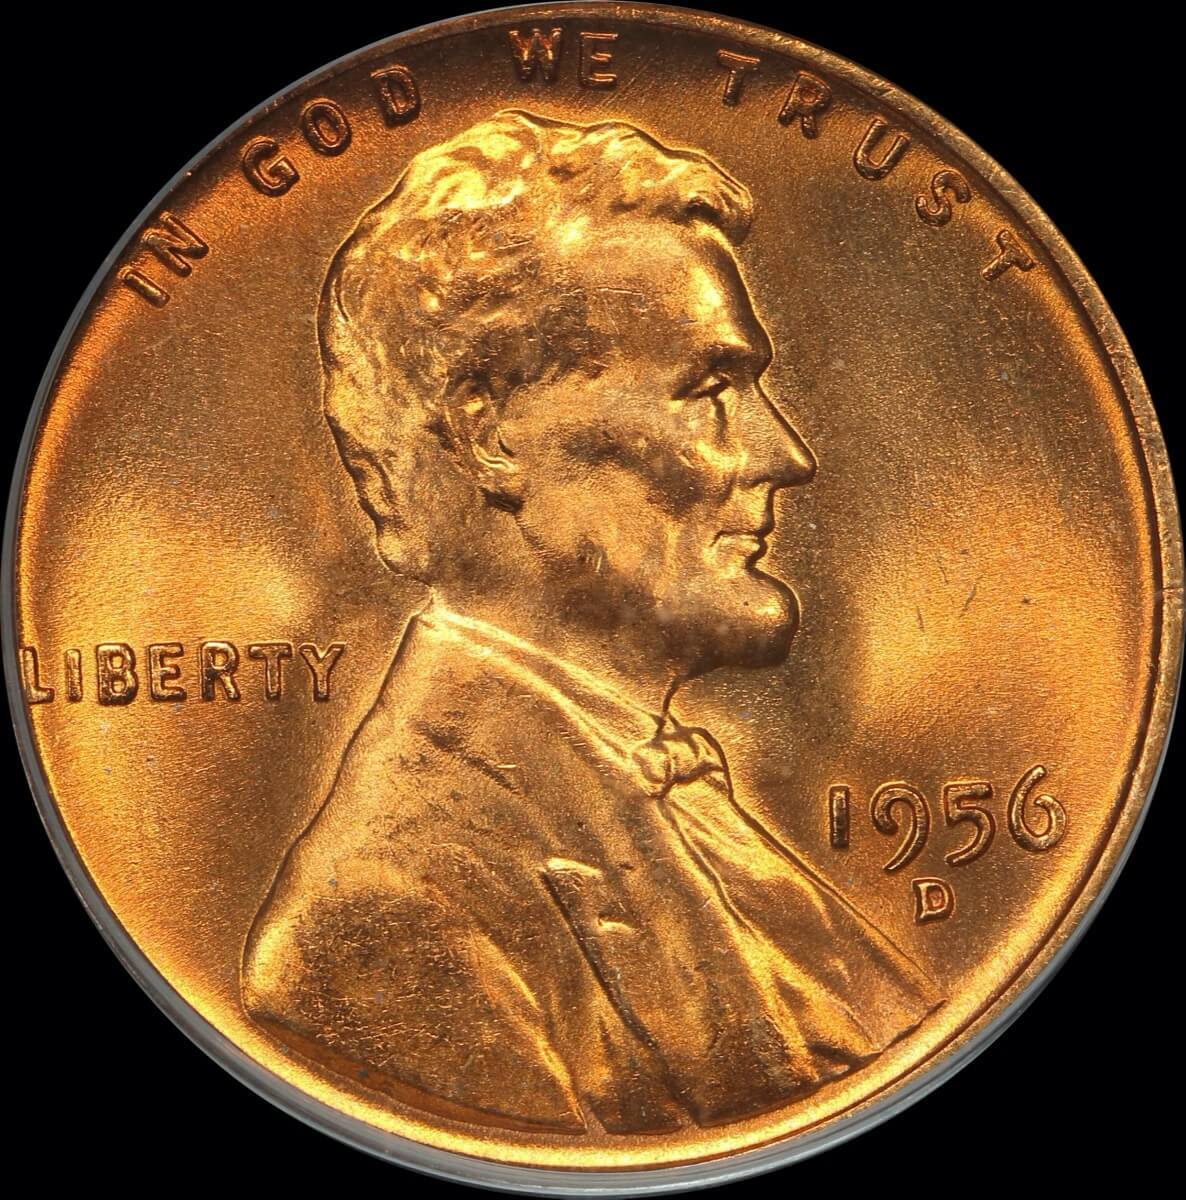 United States 1956-D Copper Cent KM# A 132 PCGS MS66RD product image